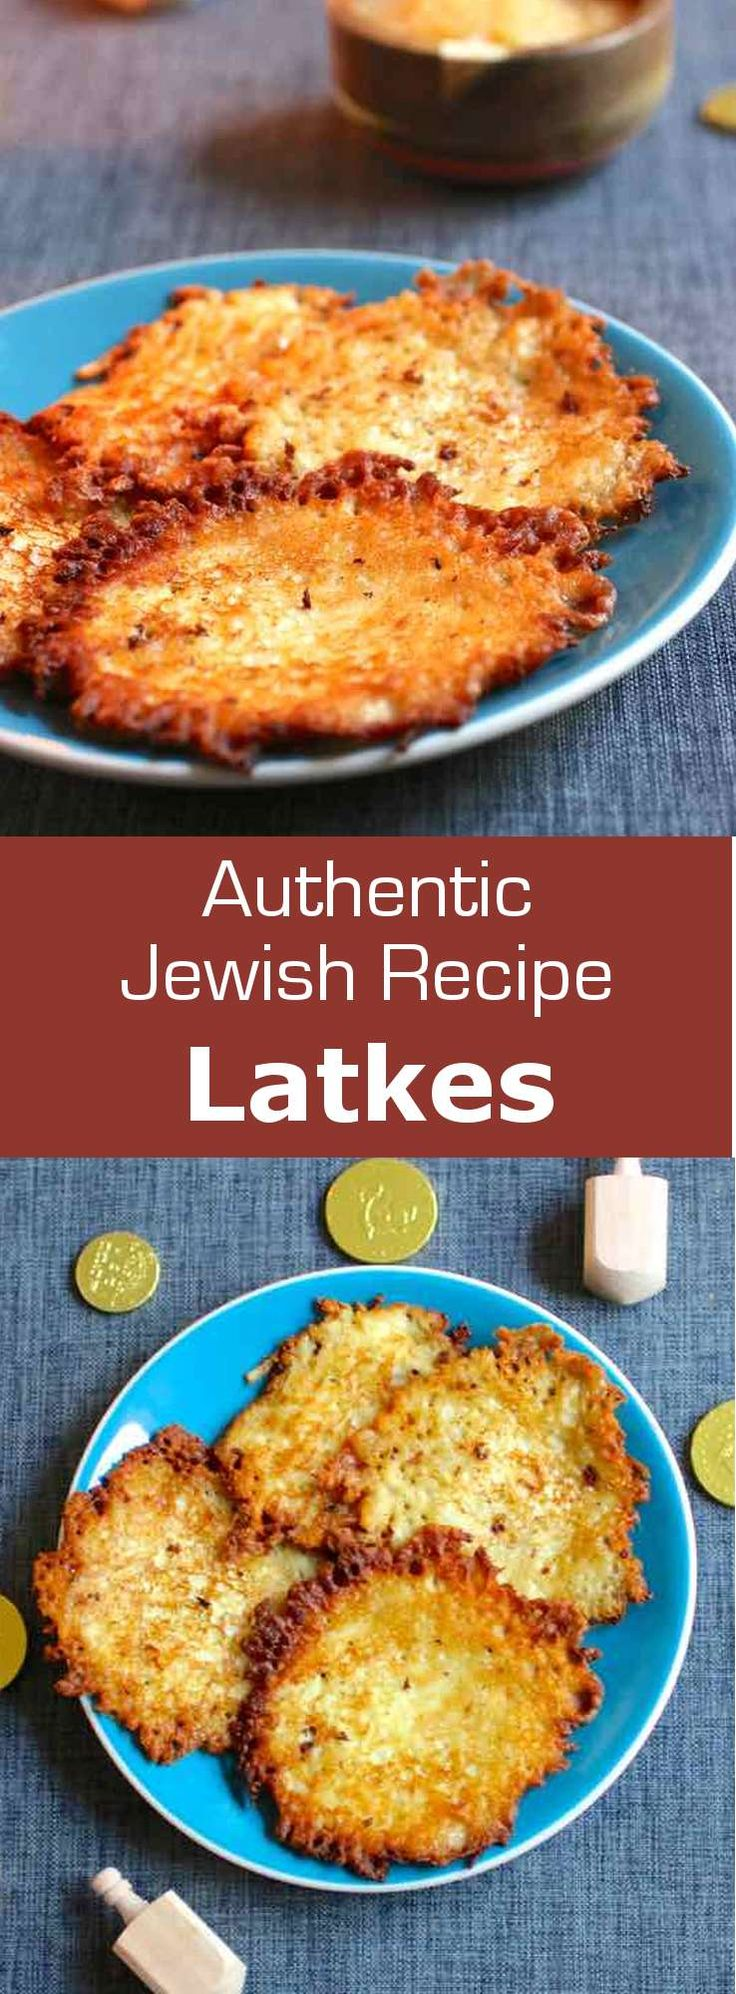 Polish traditional latkes are potato hash browns served with applesauce and sour cream during the Jewish holiday of Hanukkah. #hanukkah #poland #vegetarian #196flavors